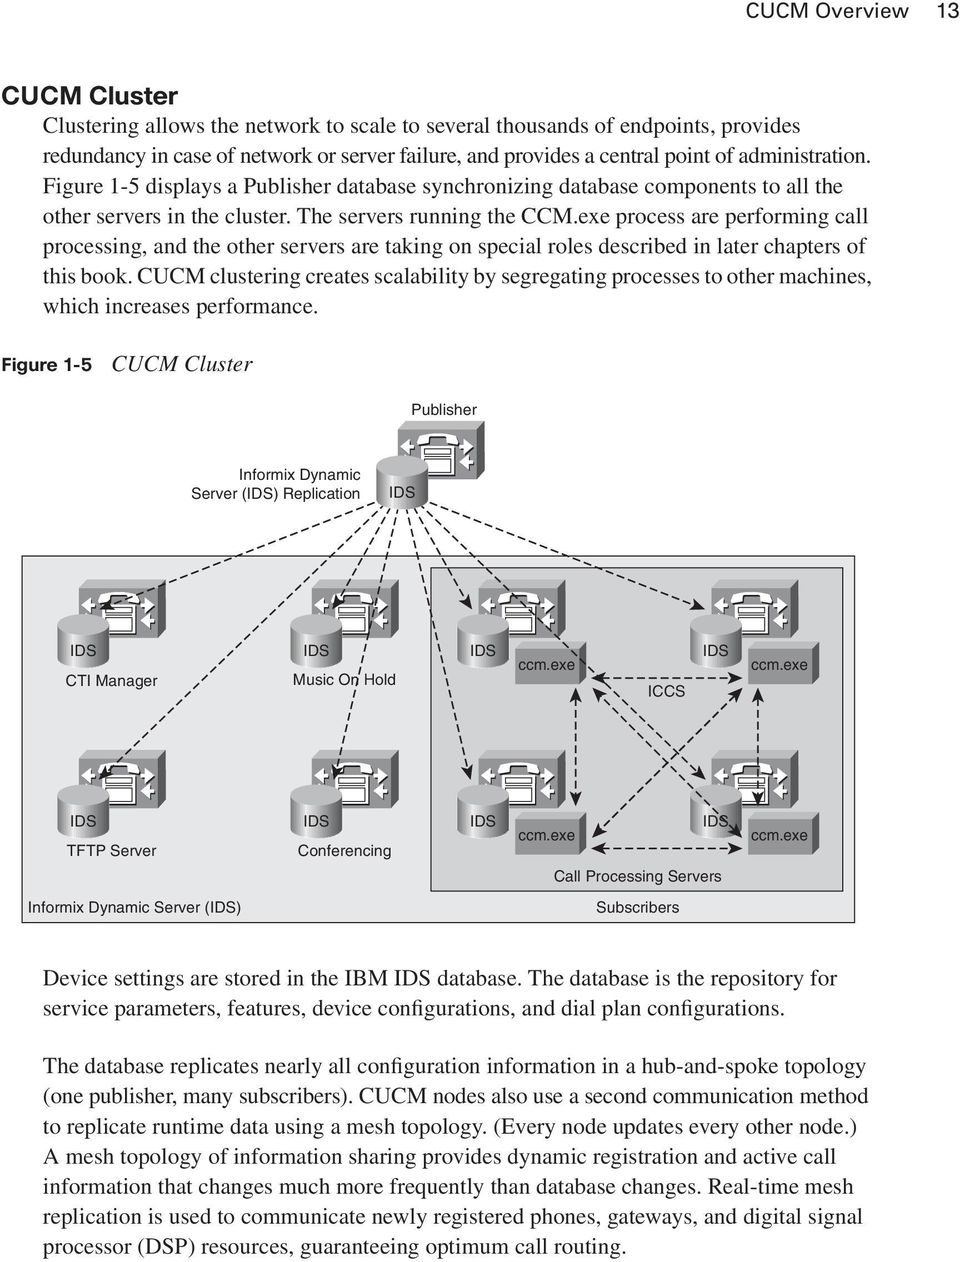 exe process are performing call processing, and the other servers are taking on special roles described in later chapters of this book.